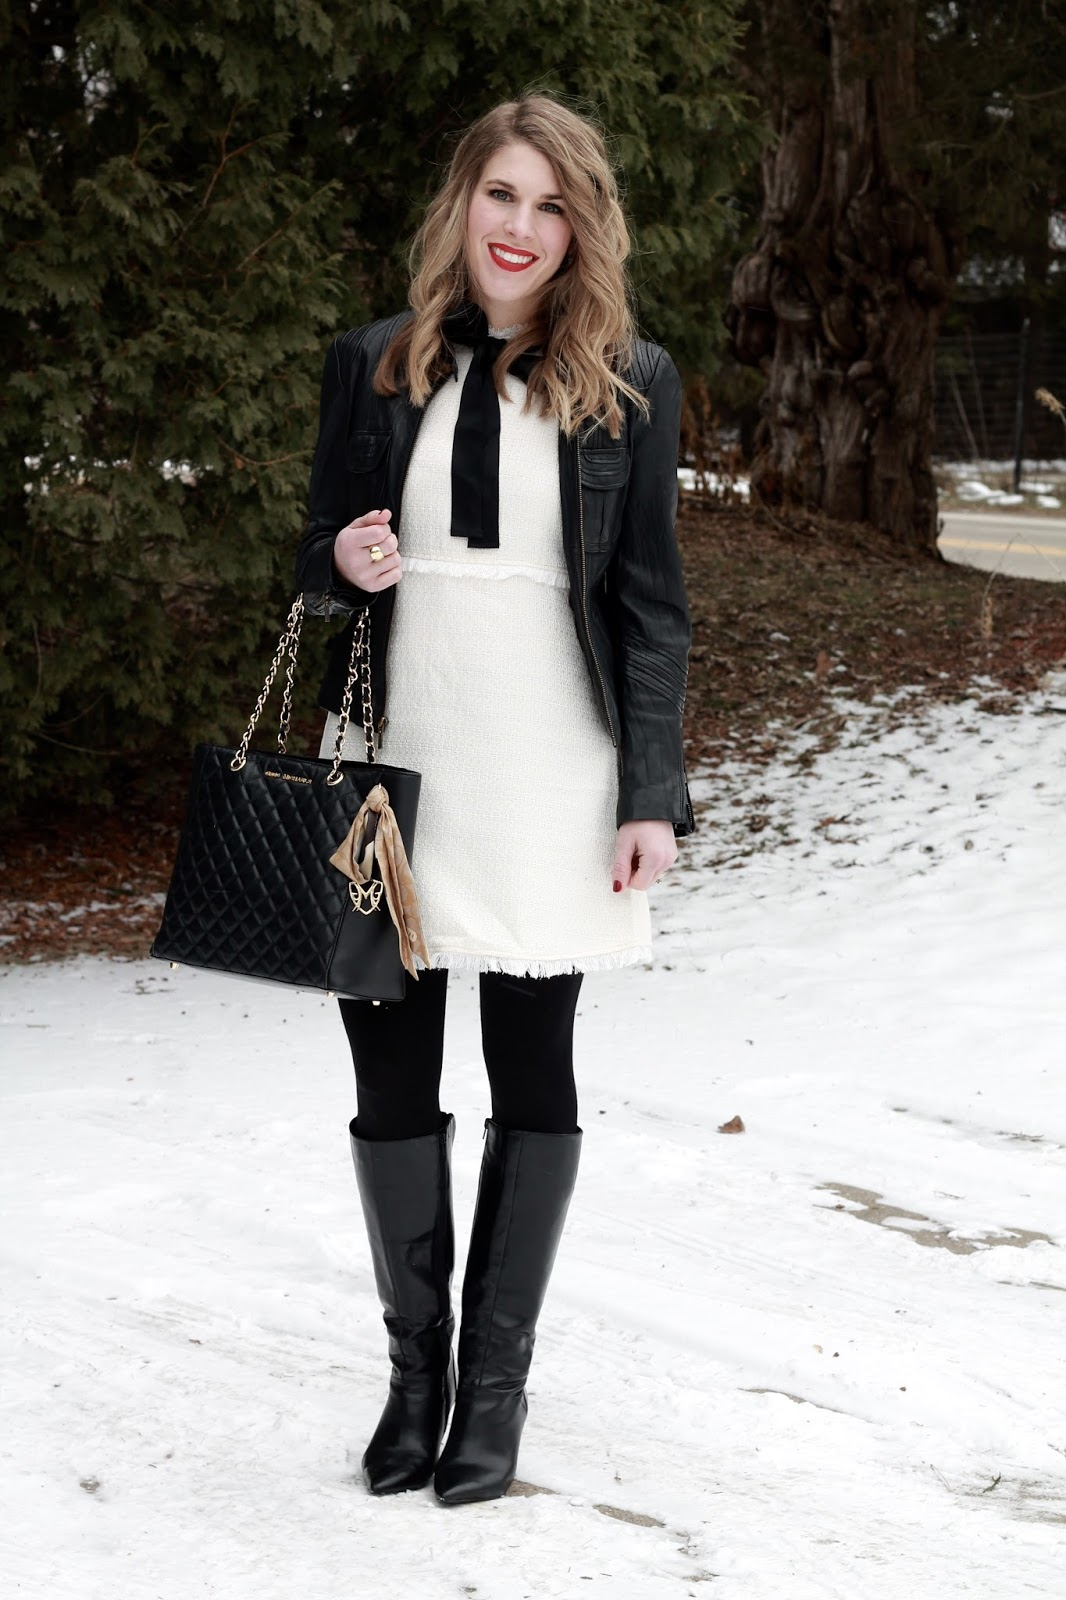 white tweed dress with black bow tie, leather moto jacket, black boots, black quilted tote